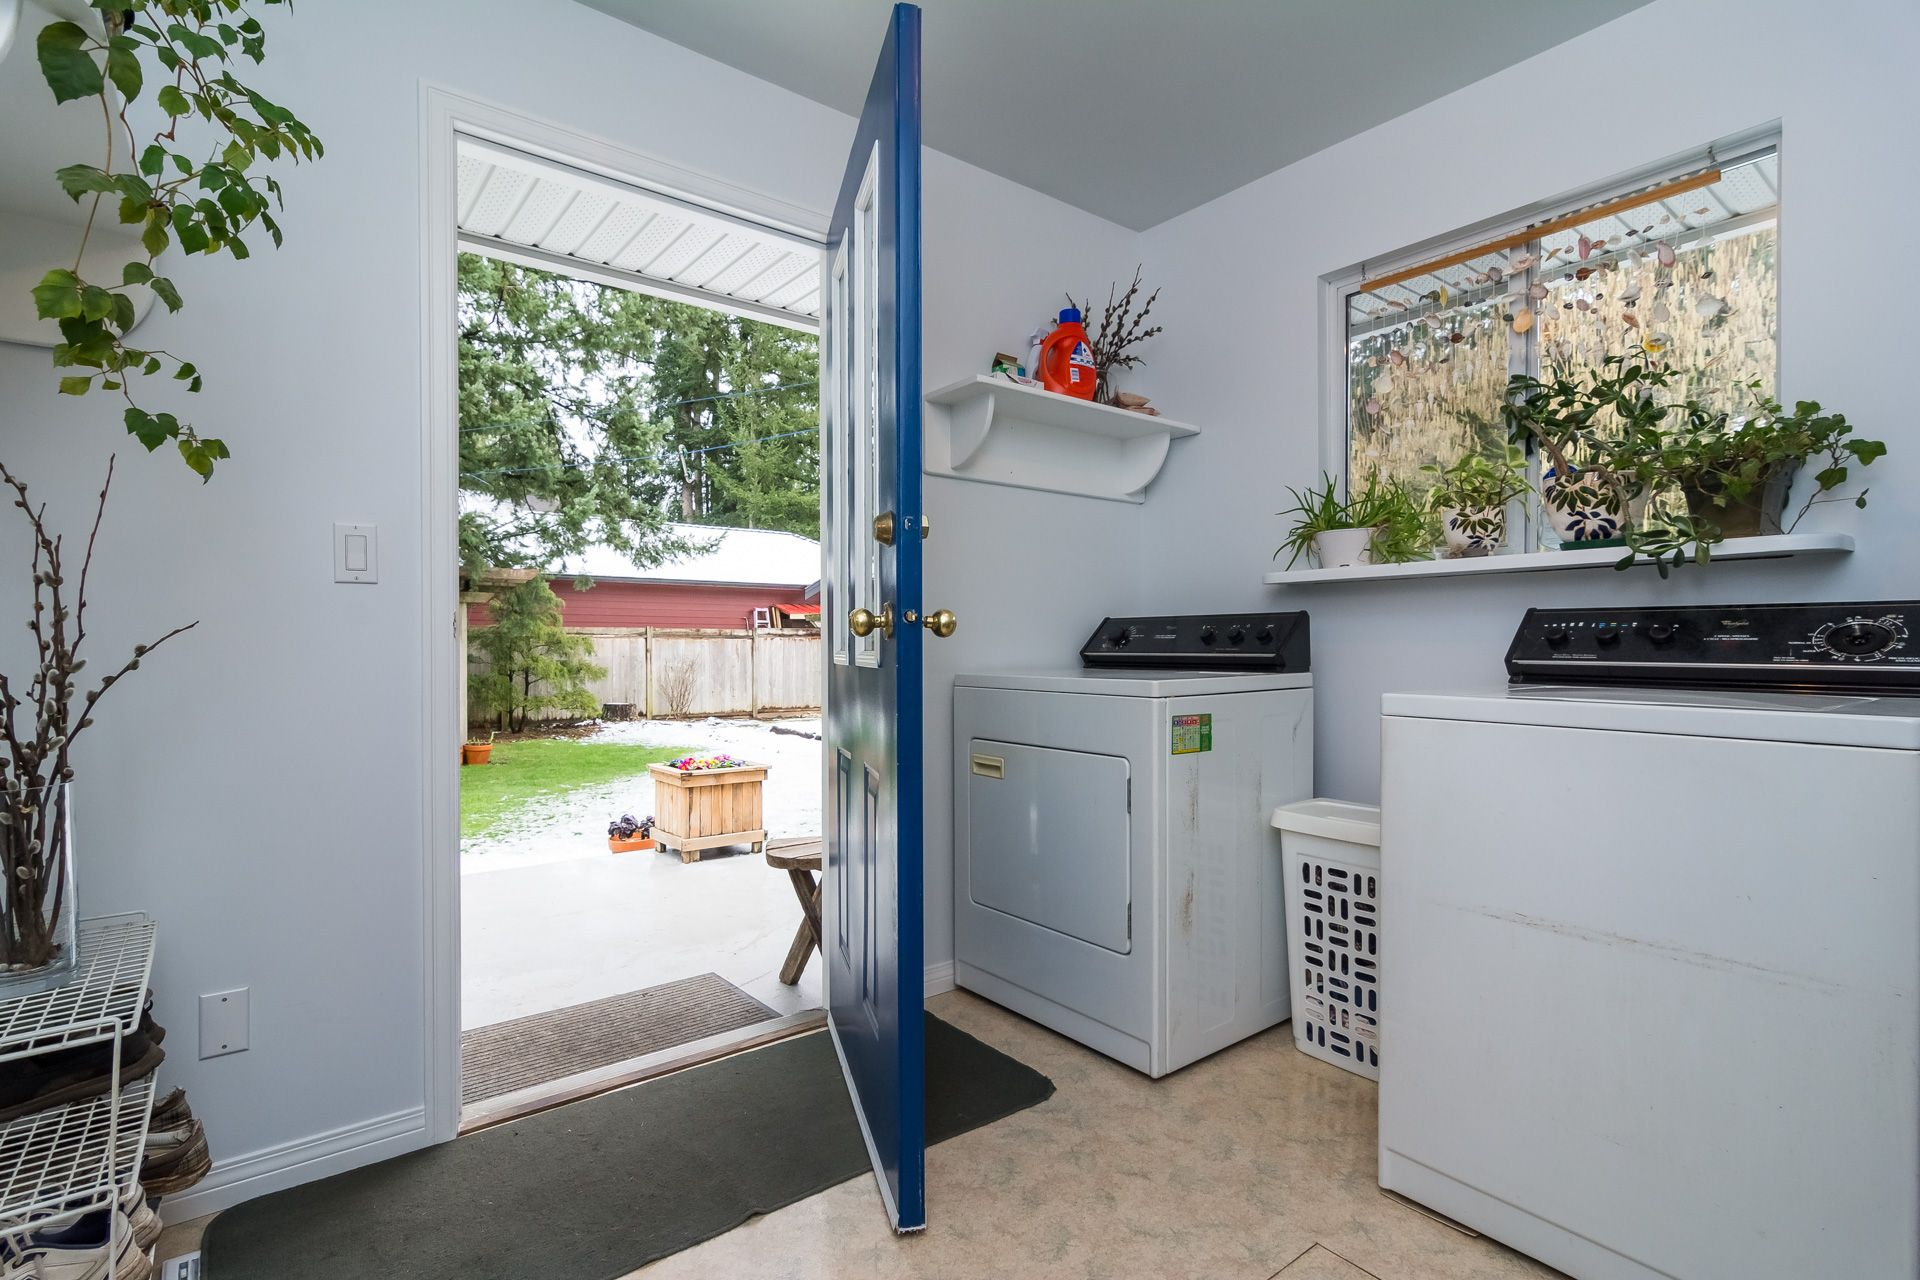 """Photo 27: Photos: 19941 37 Avenue in Langley: Brookswood Langley House for sale in """"Brookswood"""" : MLS®# R2240474"""